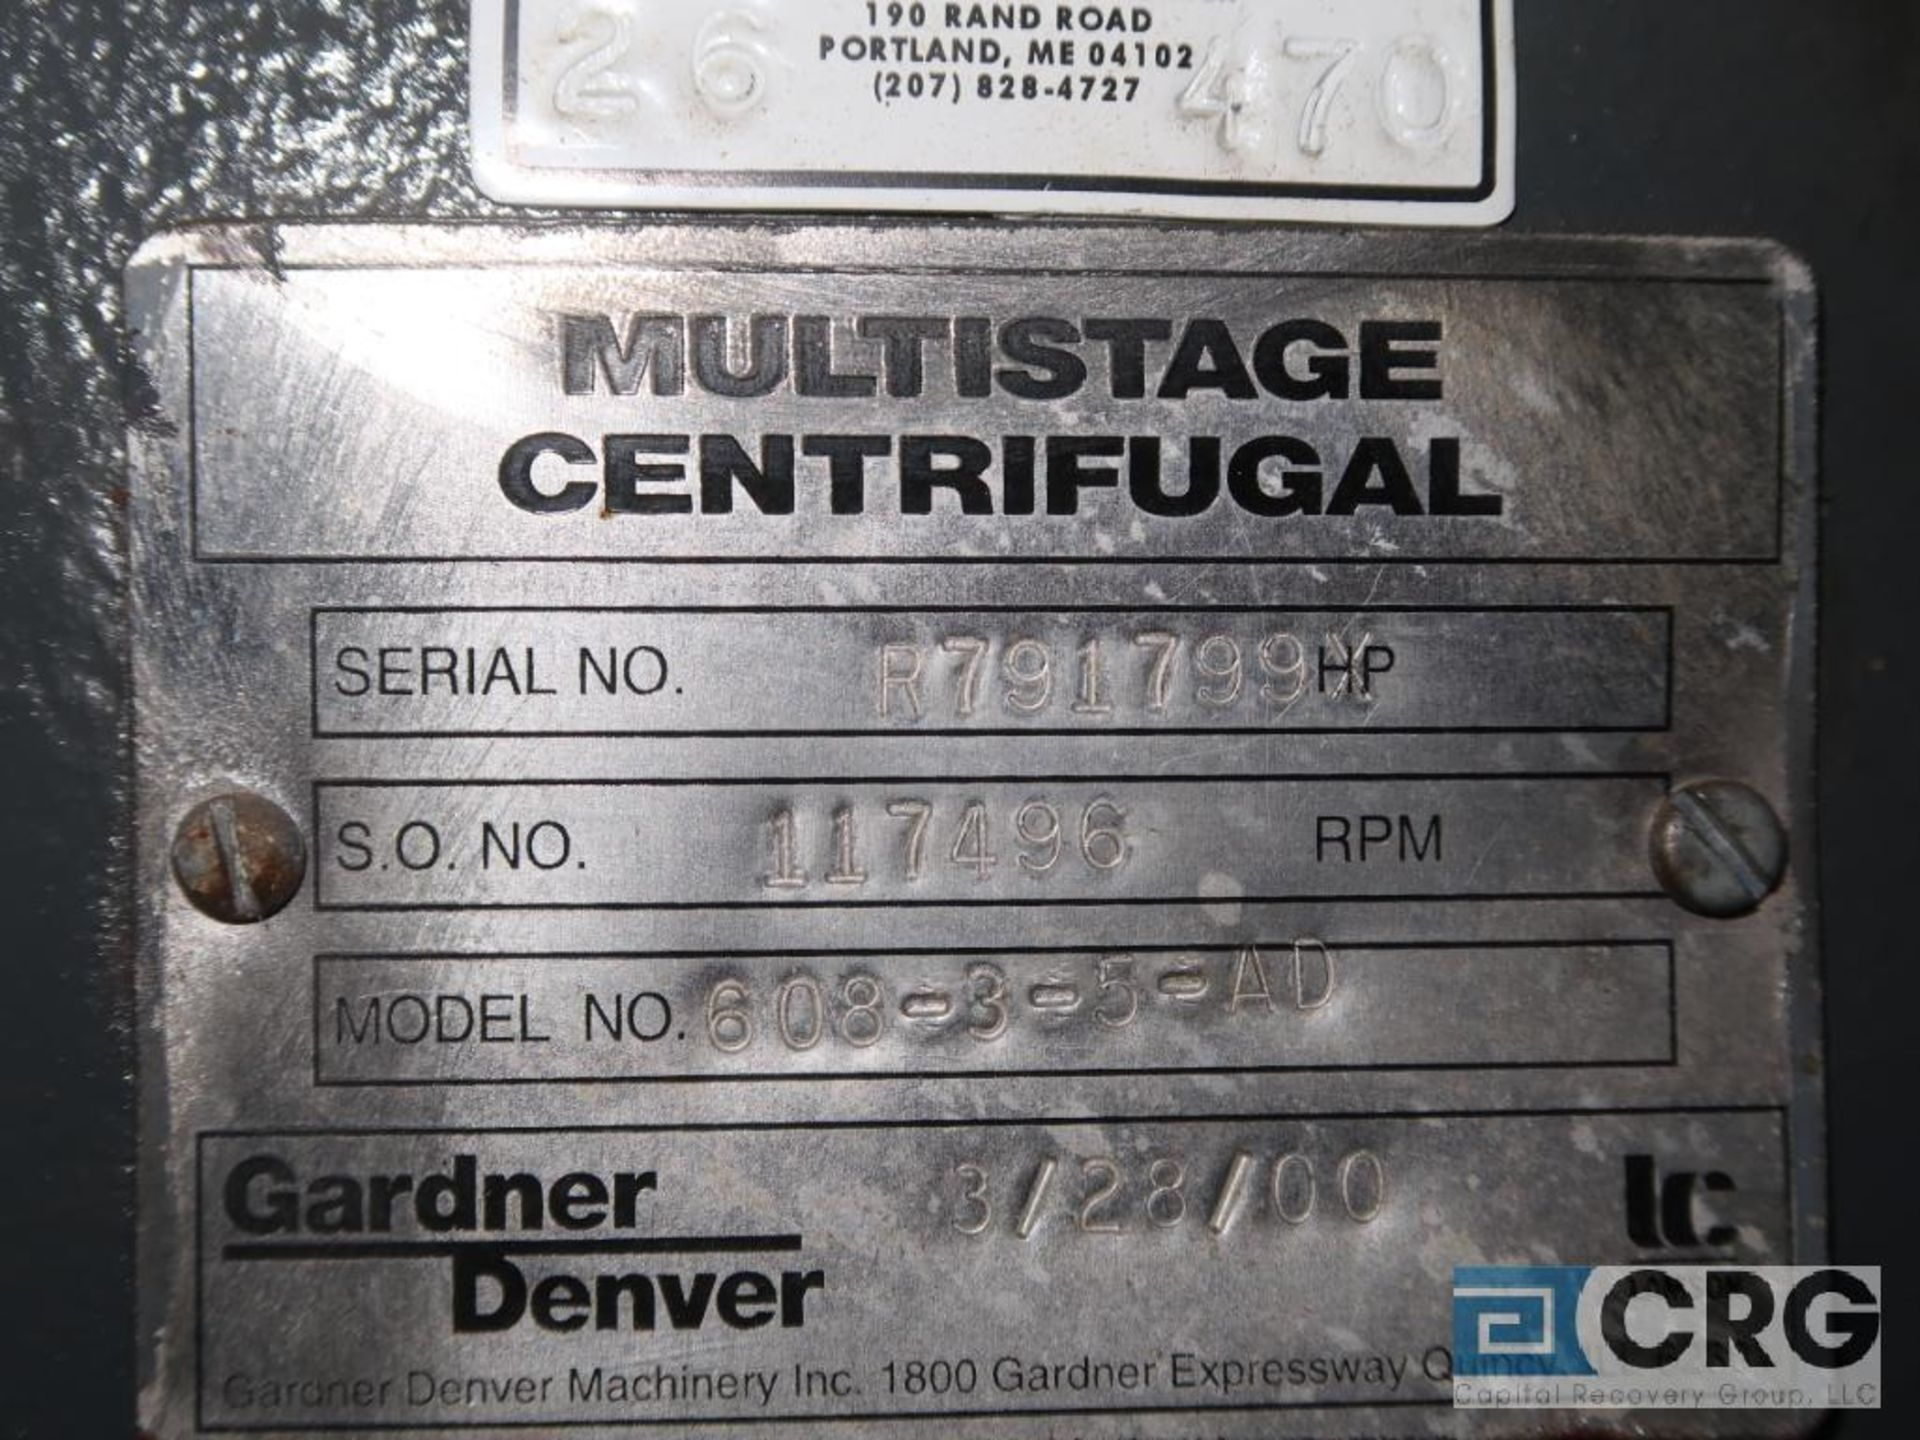 Gardner Denver 608-3-5 4D multi stage centrifugal vacuum pump, year 2000, s/n R791799 (Off Site - Image 2 of 2